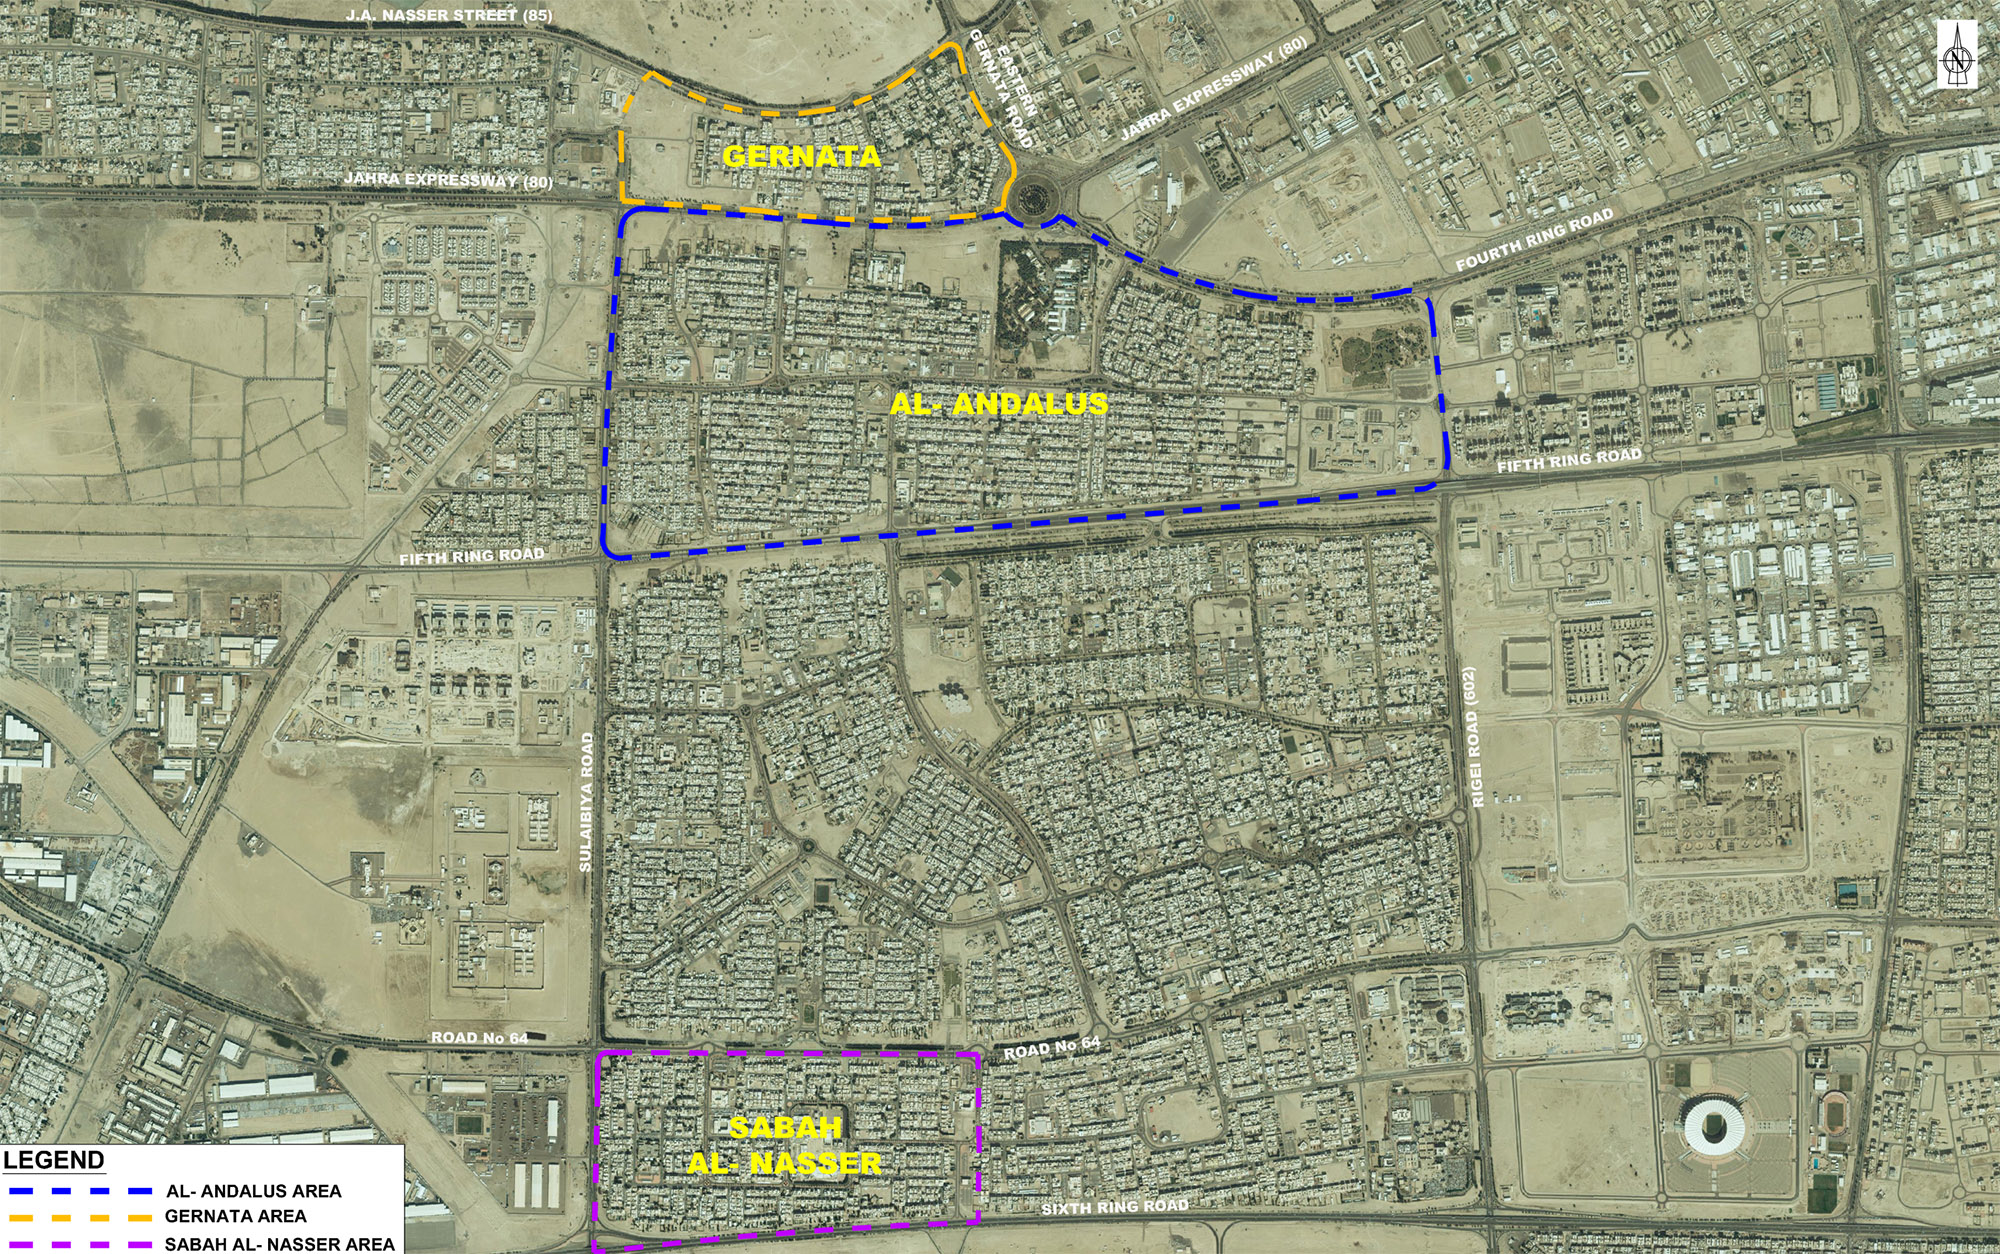 Infrastructure Upgrades due for Gharnata, Andalus, and Sabah Al Naser Areas